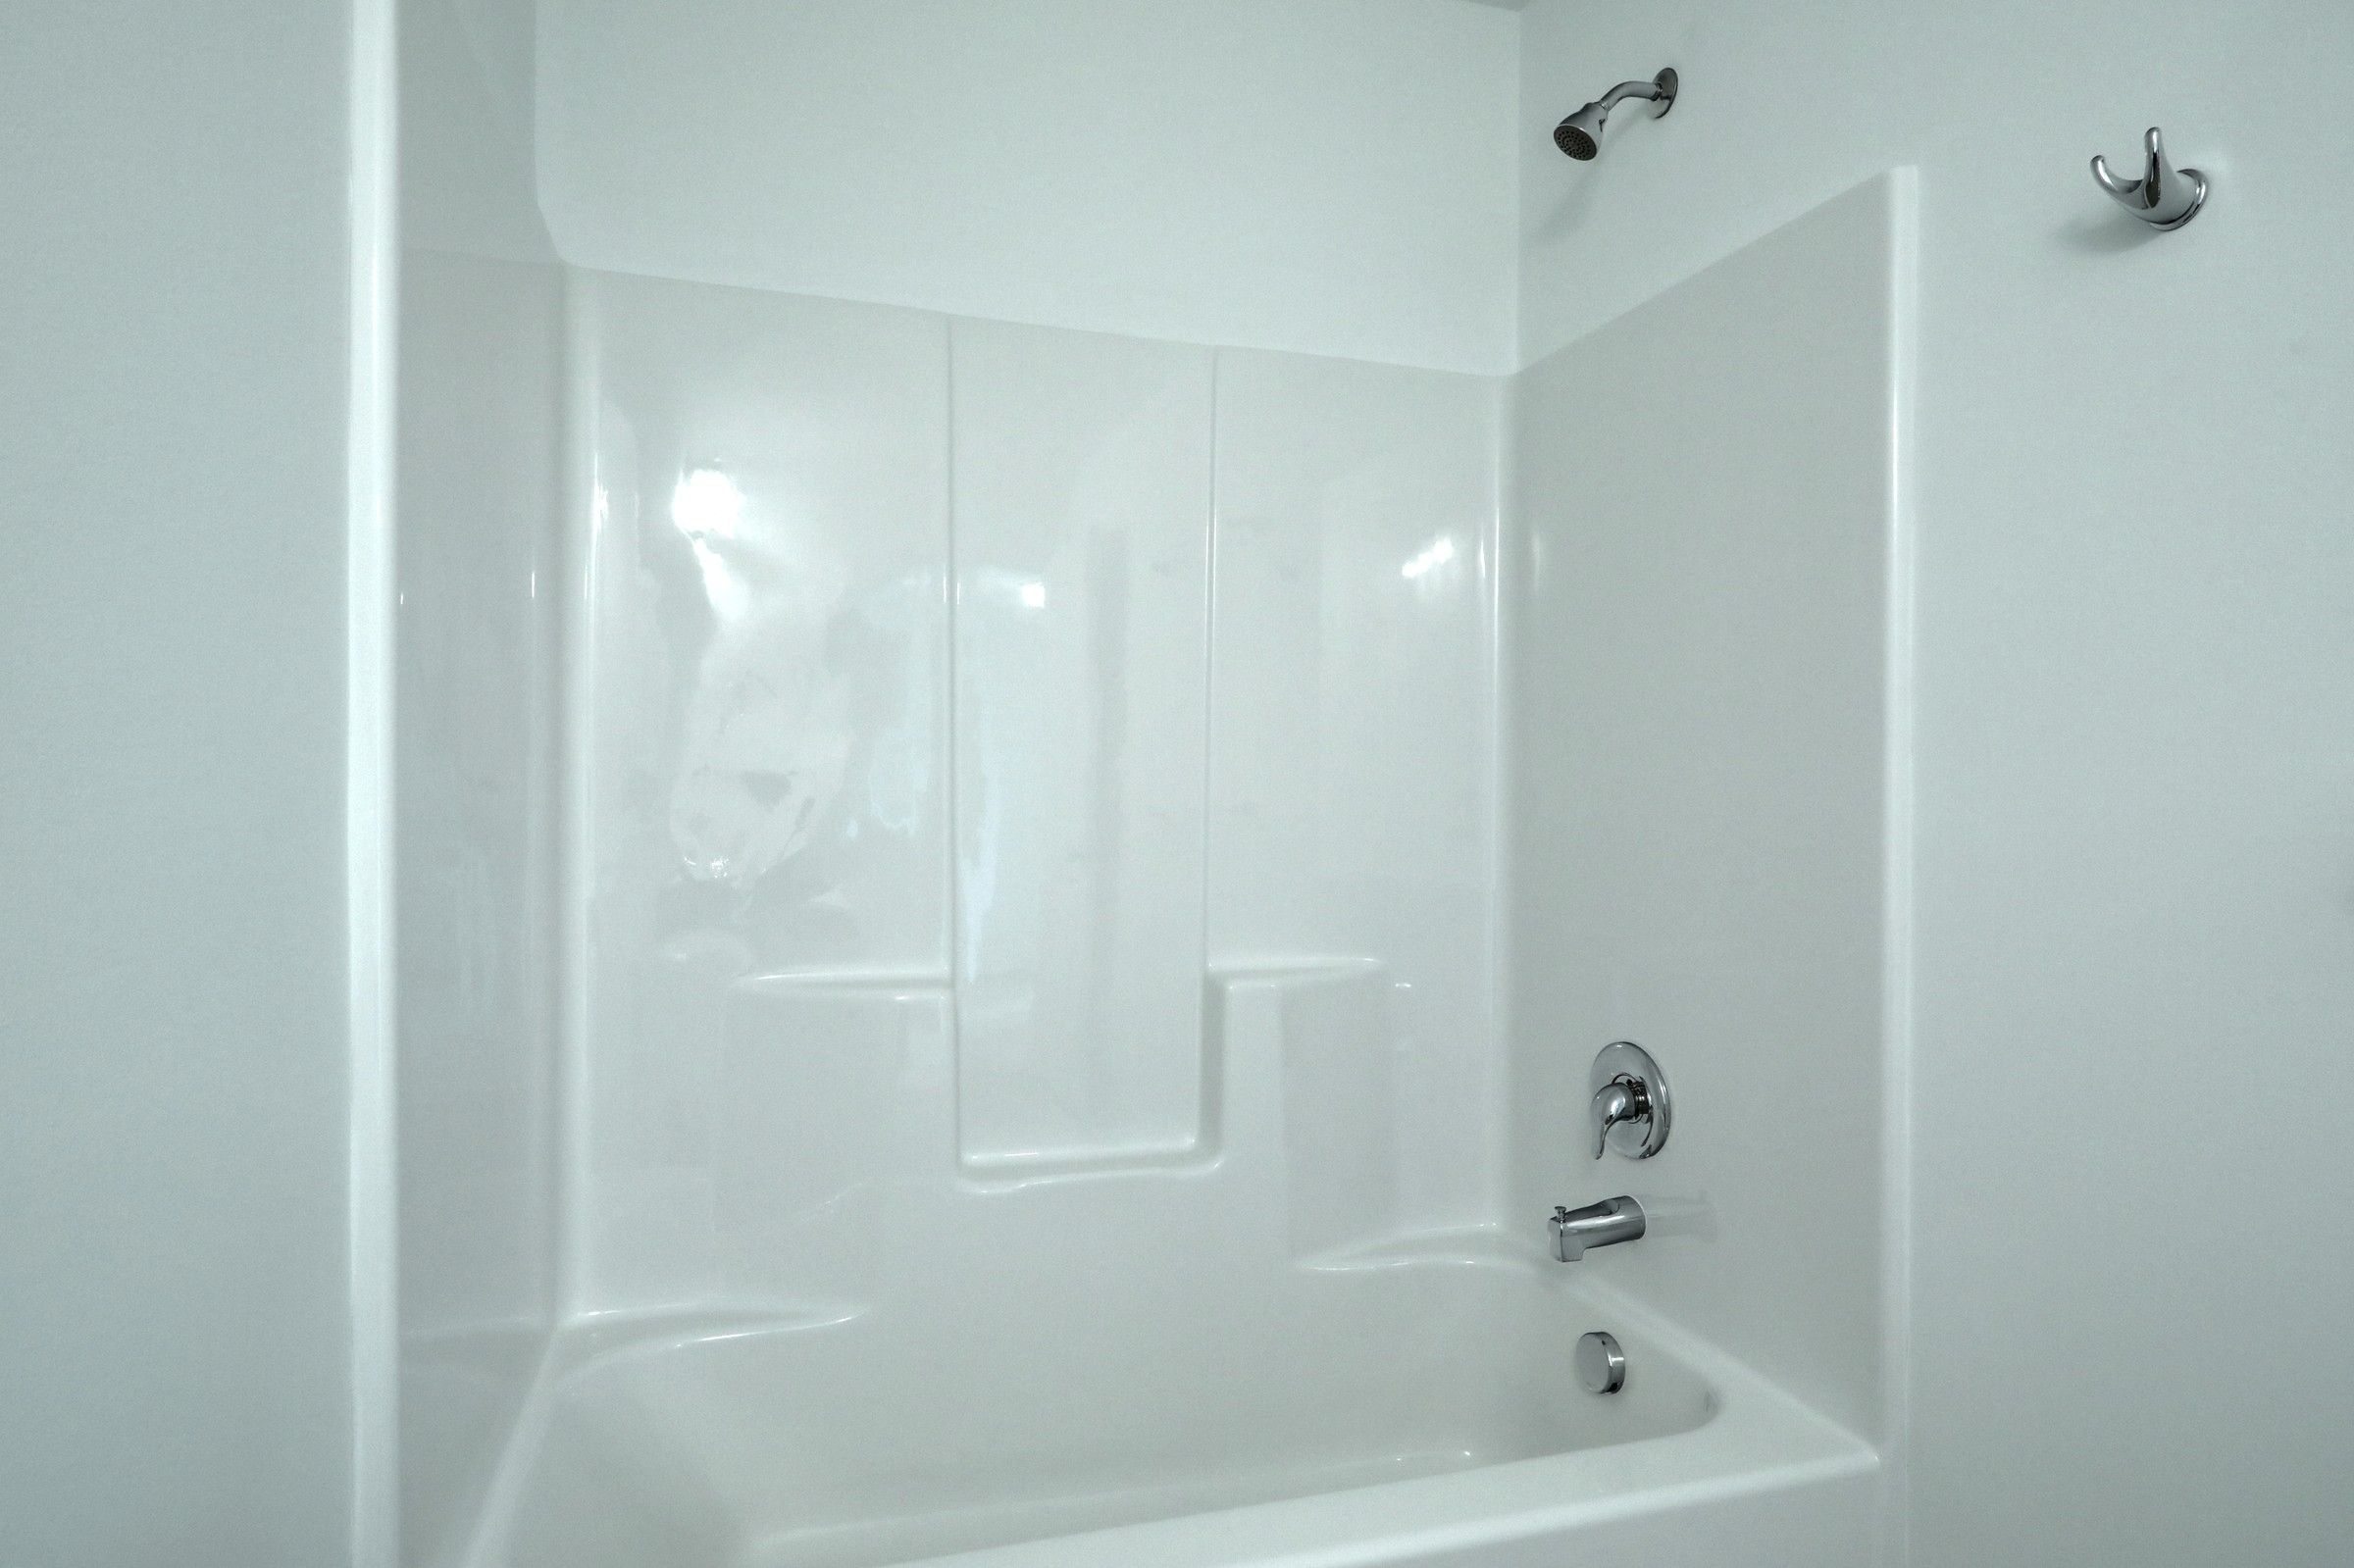 Bathroom featured in the Lachlan Heritage By Keystone Custom Homes in York, PA